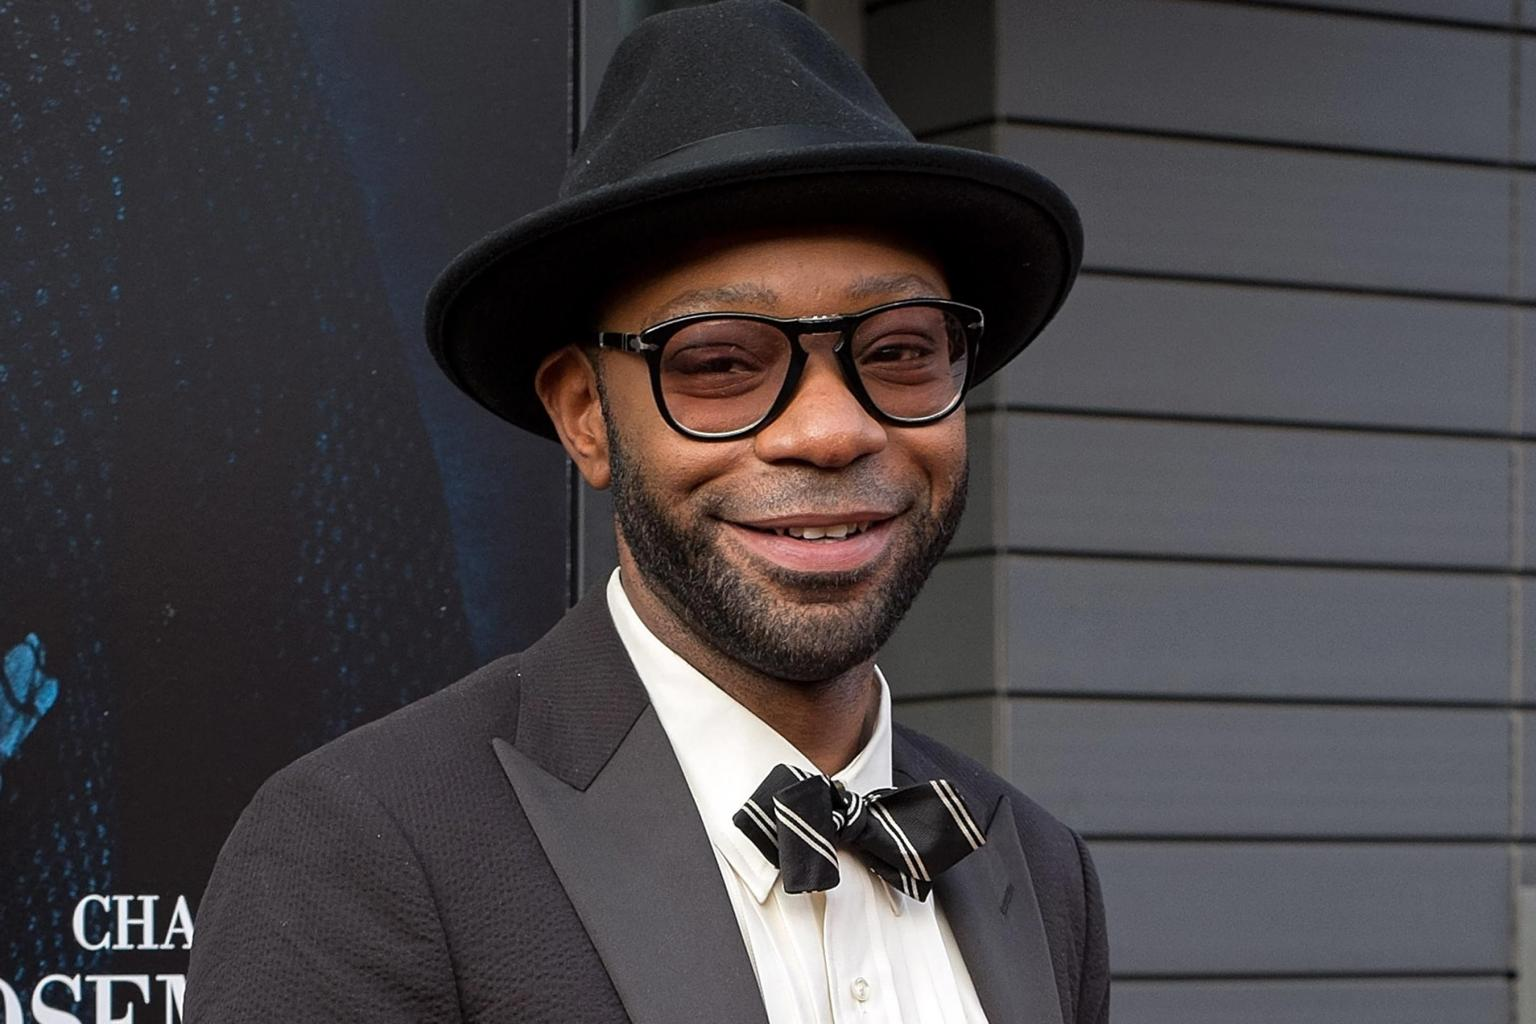 Nelsan Ellis Died After 4-Day Hospital Battle Triggered by Attempt to Confront Alcohol Abuse, Family Reveals